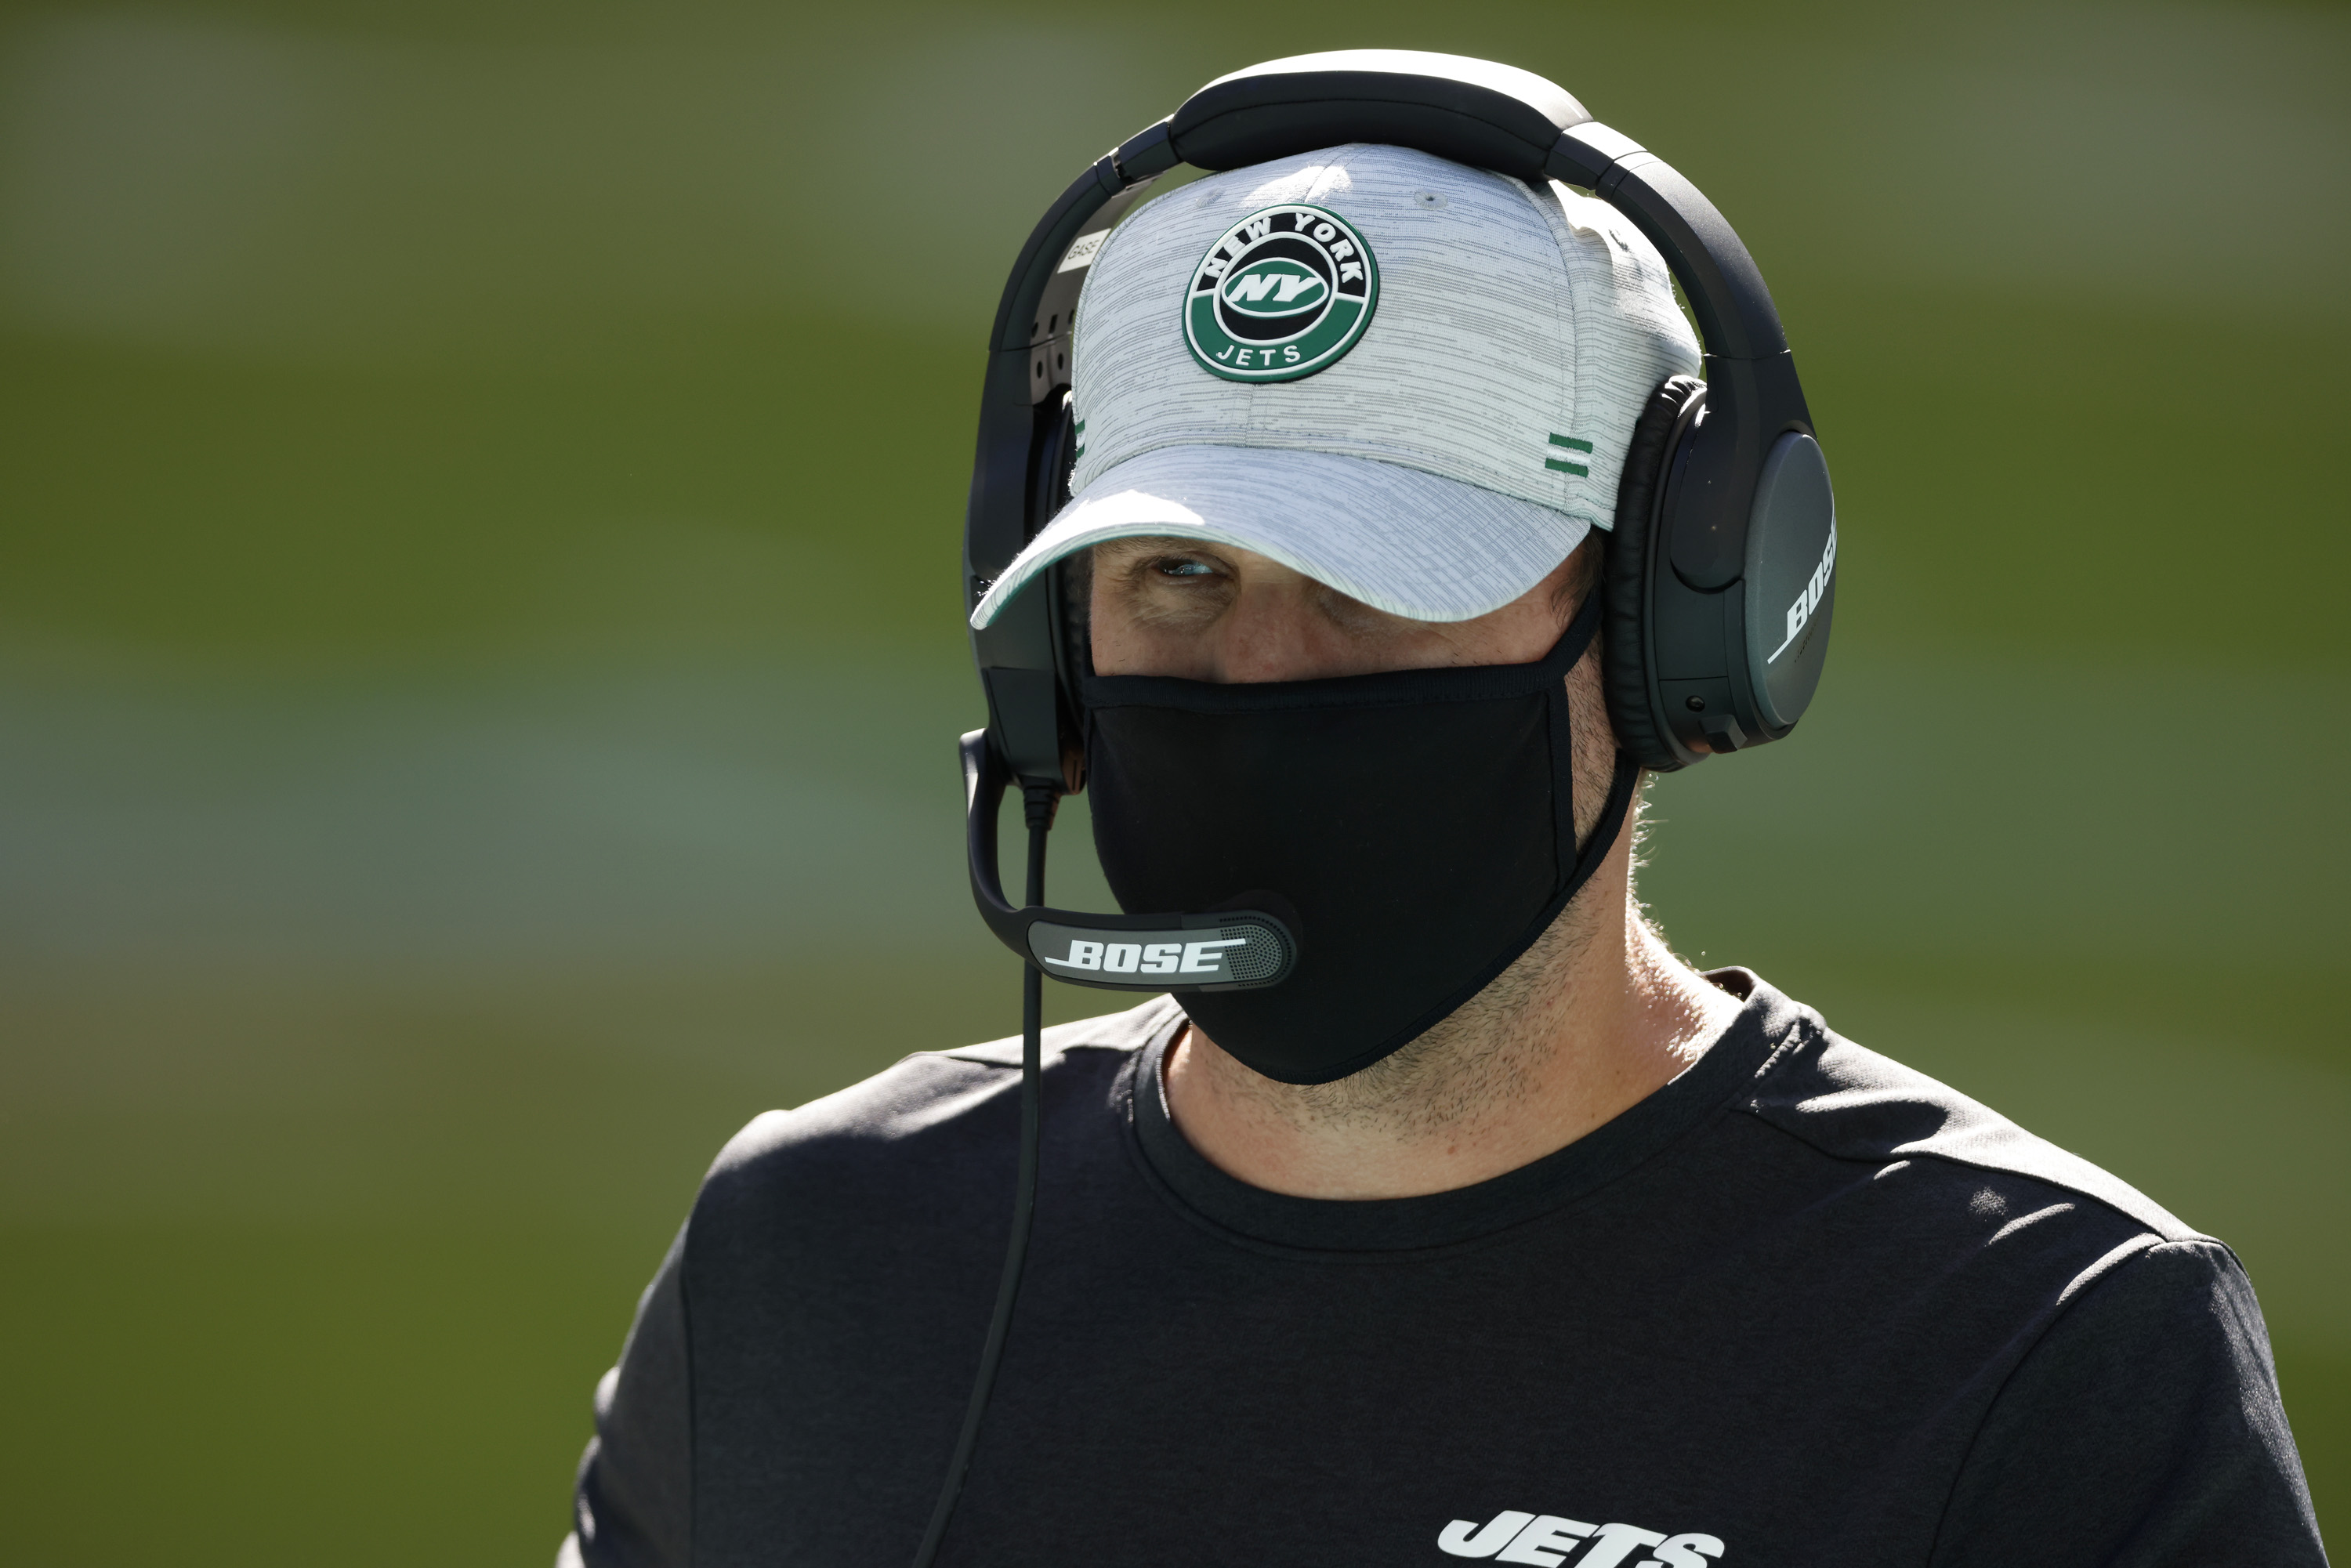 NFL: Jets coach Adam Gase reportedly gives up play calling